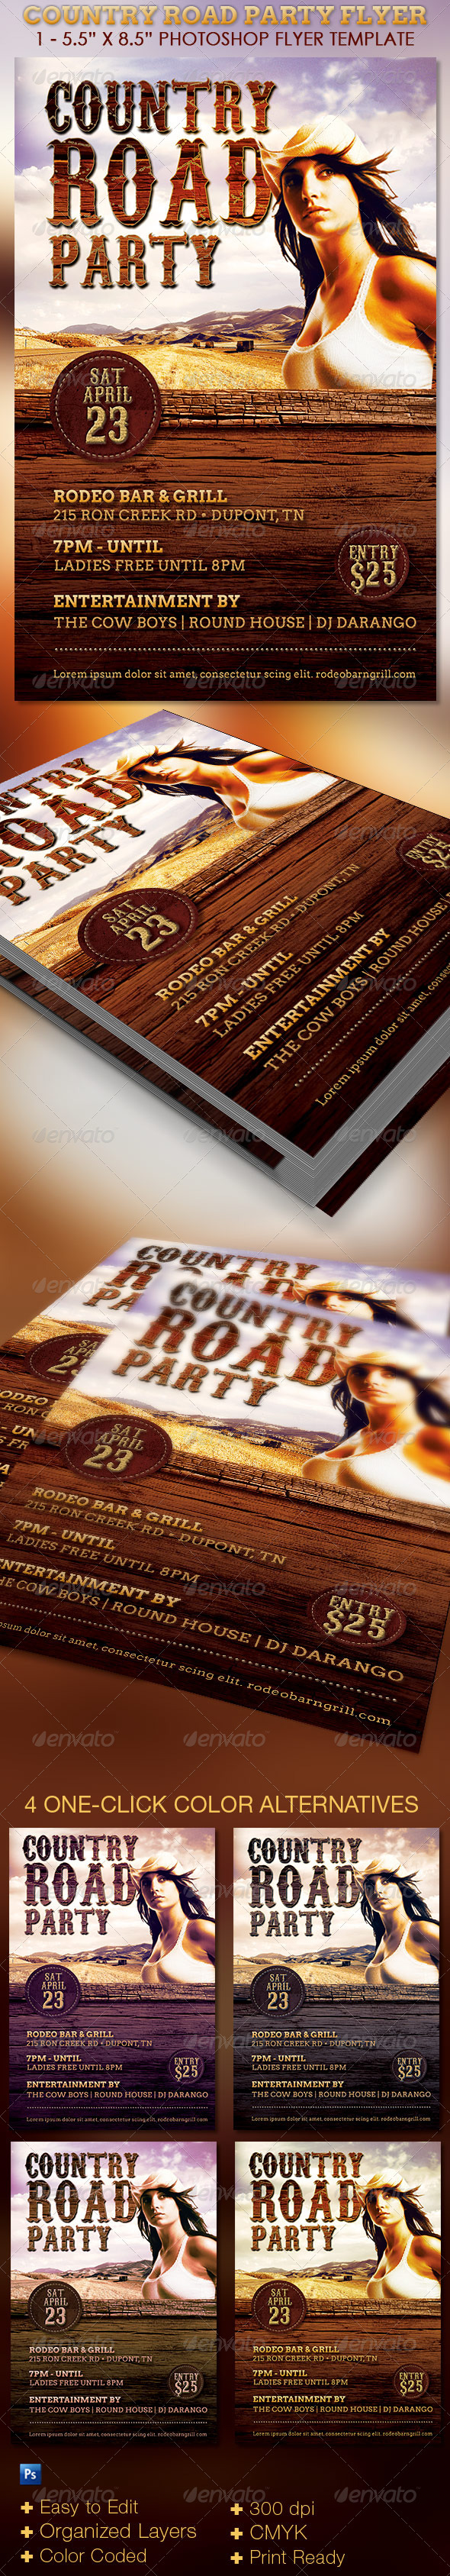 GraphicRiver Country Road Party Flyer Template 7670345